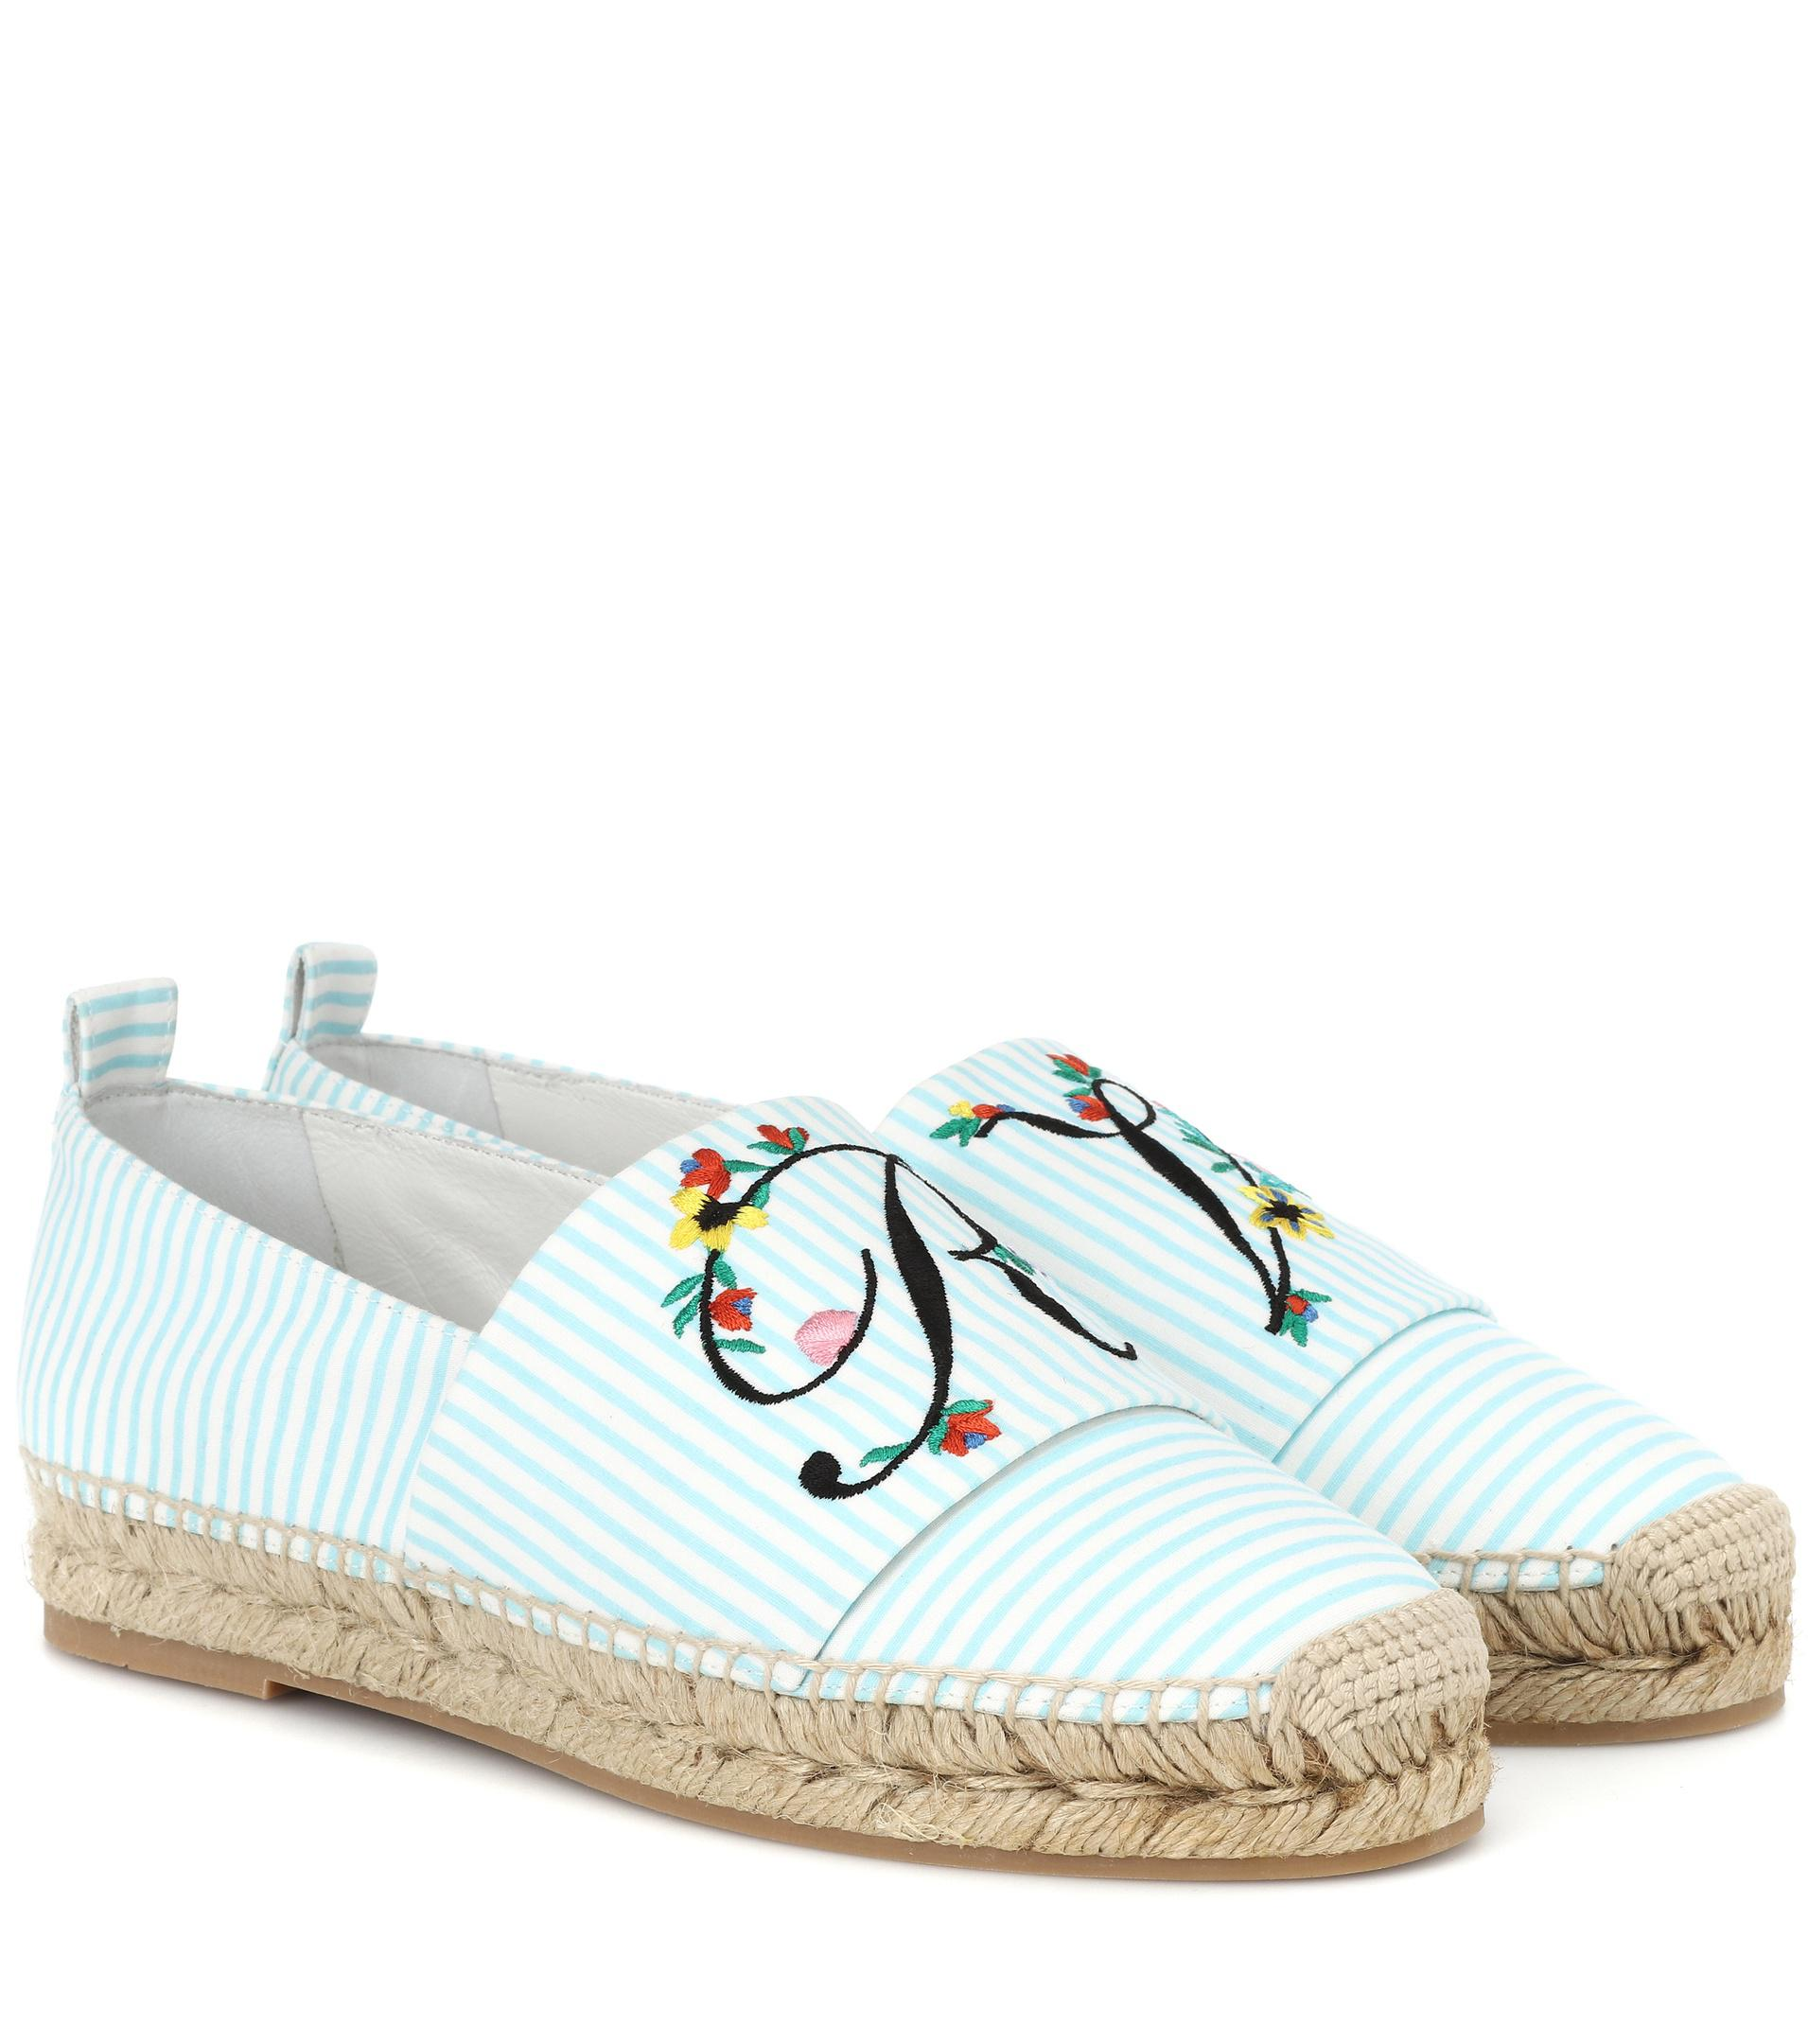 Roger Vivier Blooming RV canvas espadrilles